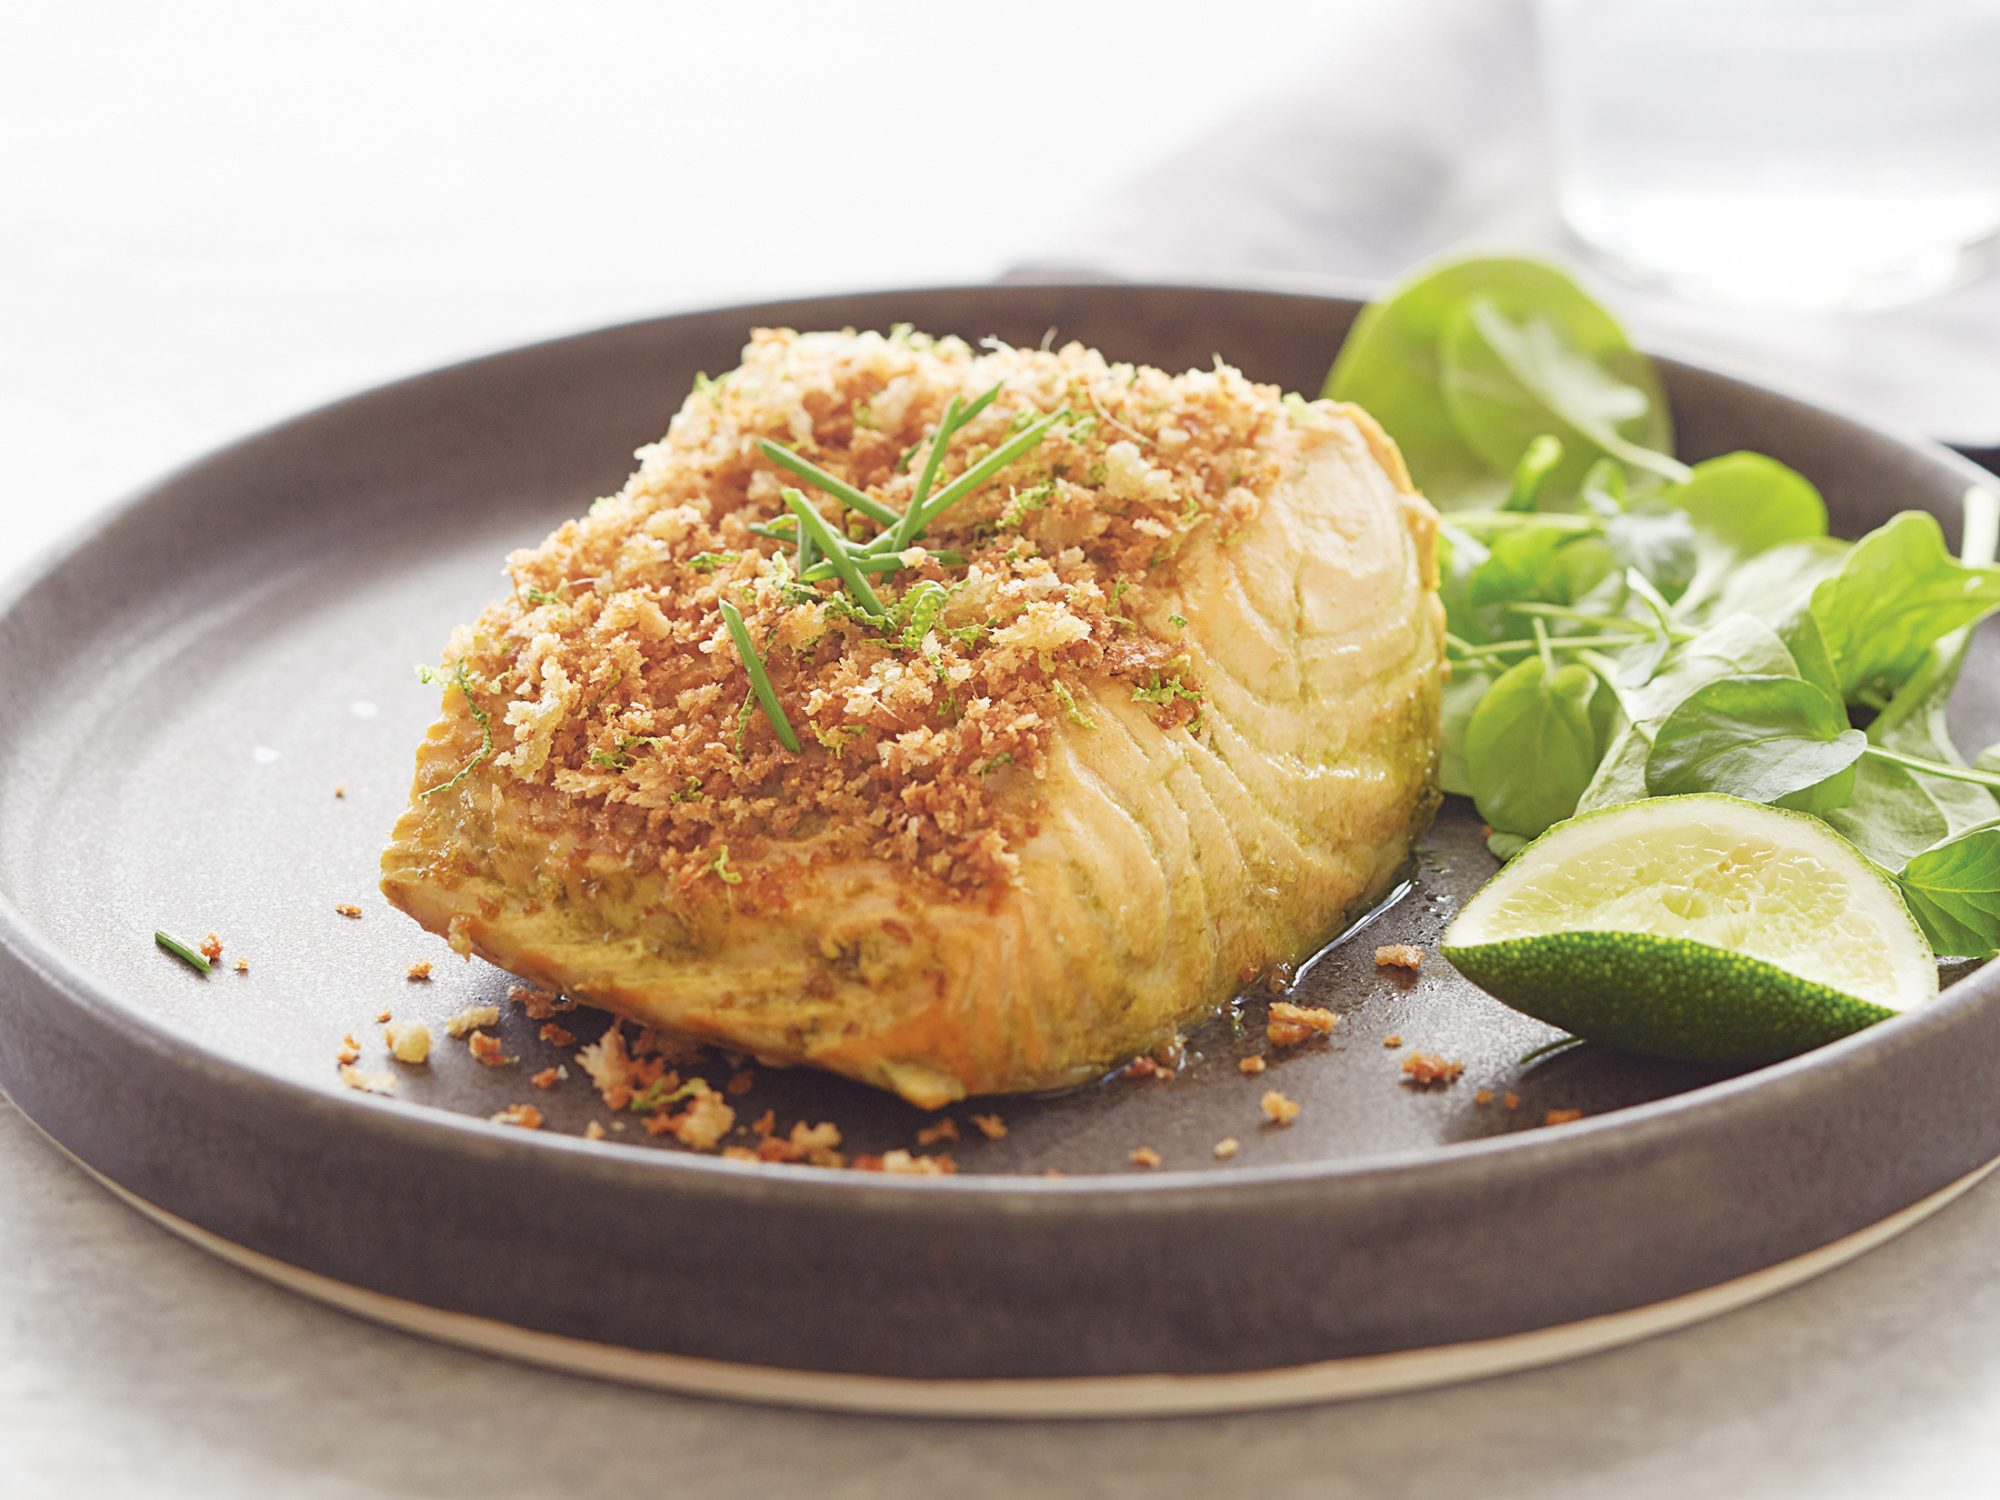 Matcha-Steeped Salmon With Ginger-Toasted Panko